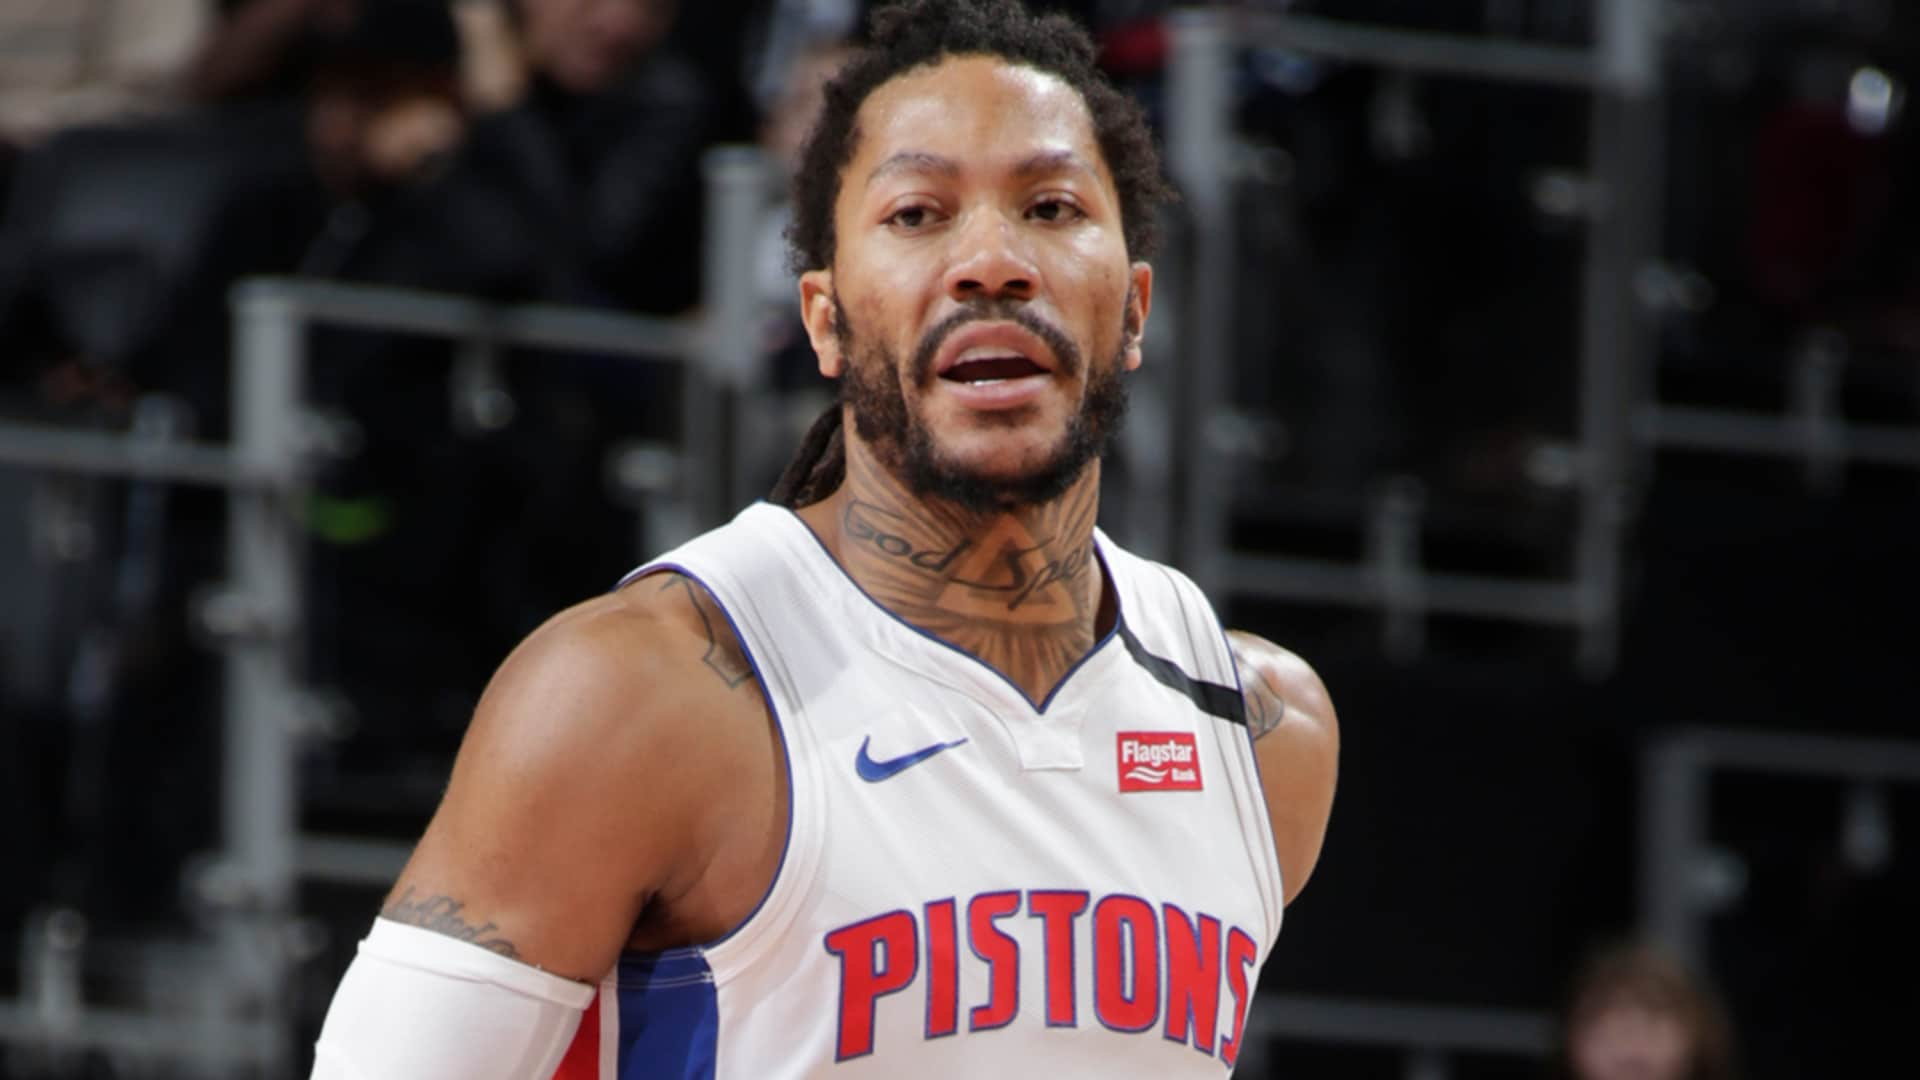 Derrick Rose Scores 22 | Pistons Playback, crafted by Flagstar: Pistons vs Grizzlies